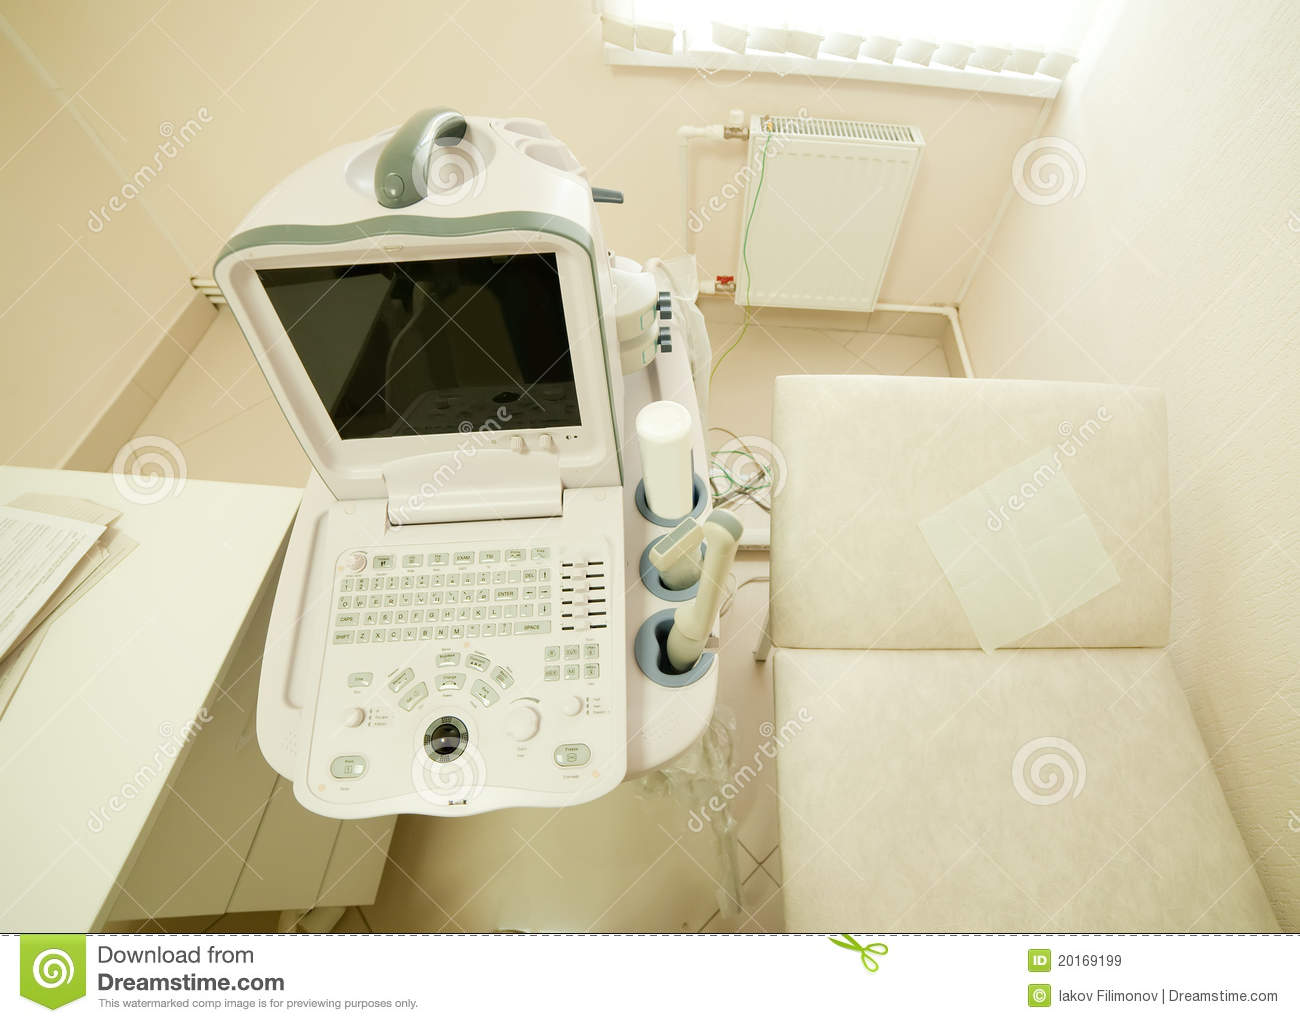 Ultrasound equipment in medical clinic